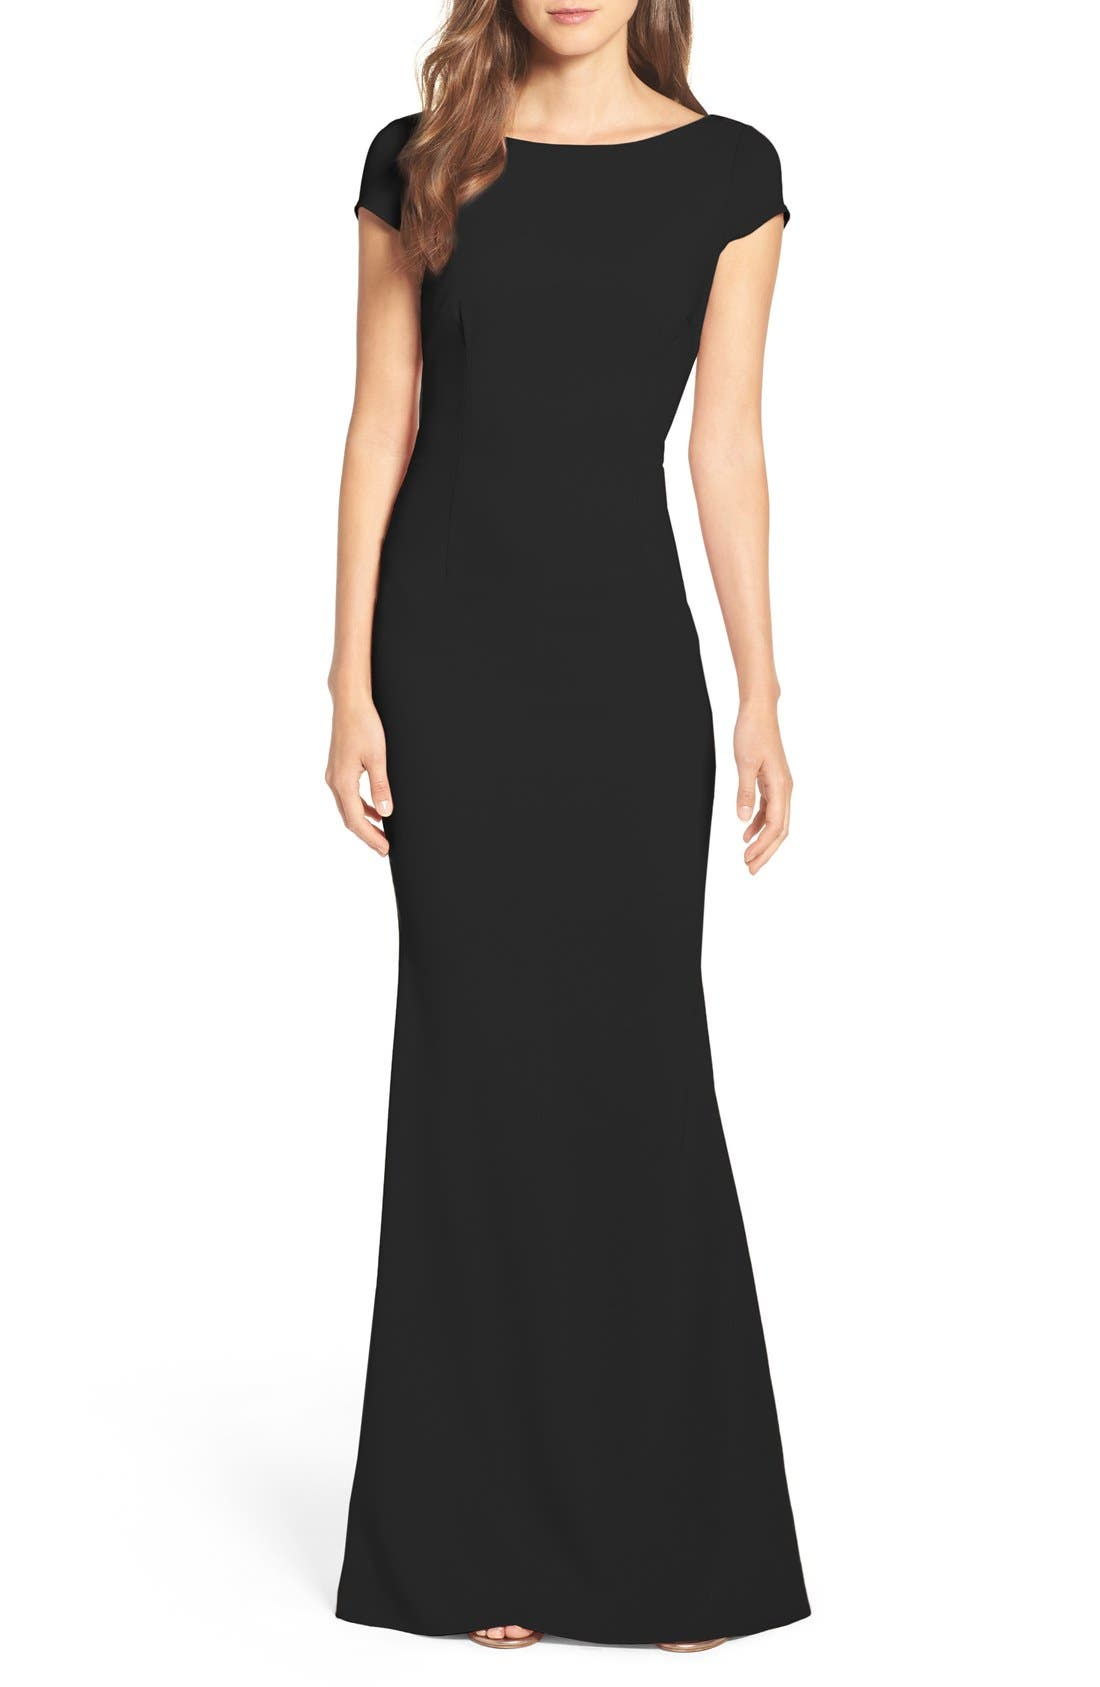 KATIE MAY Intrigue Plunge Knot Back Gown, Main, color, 001